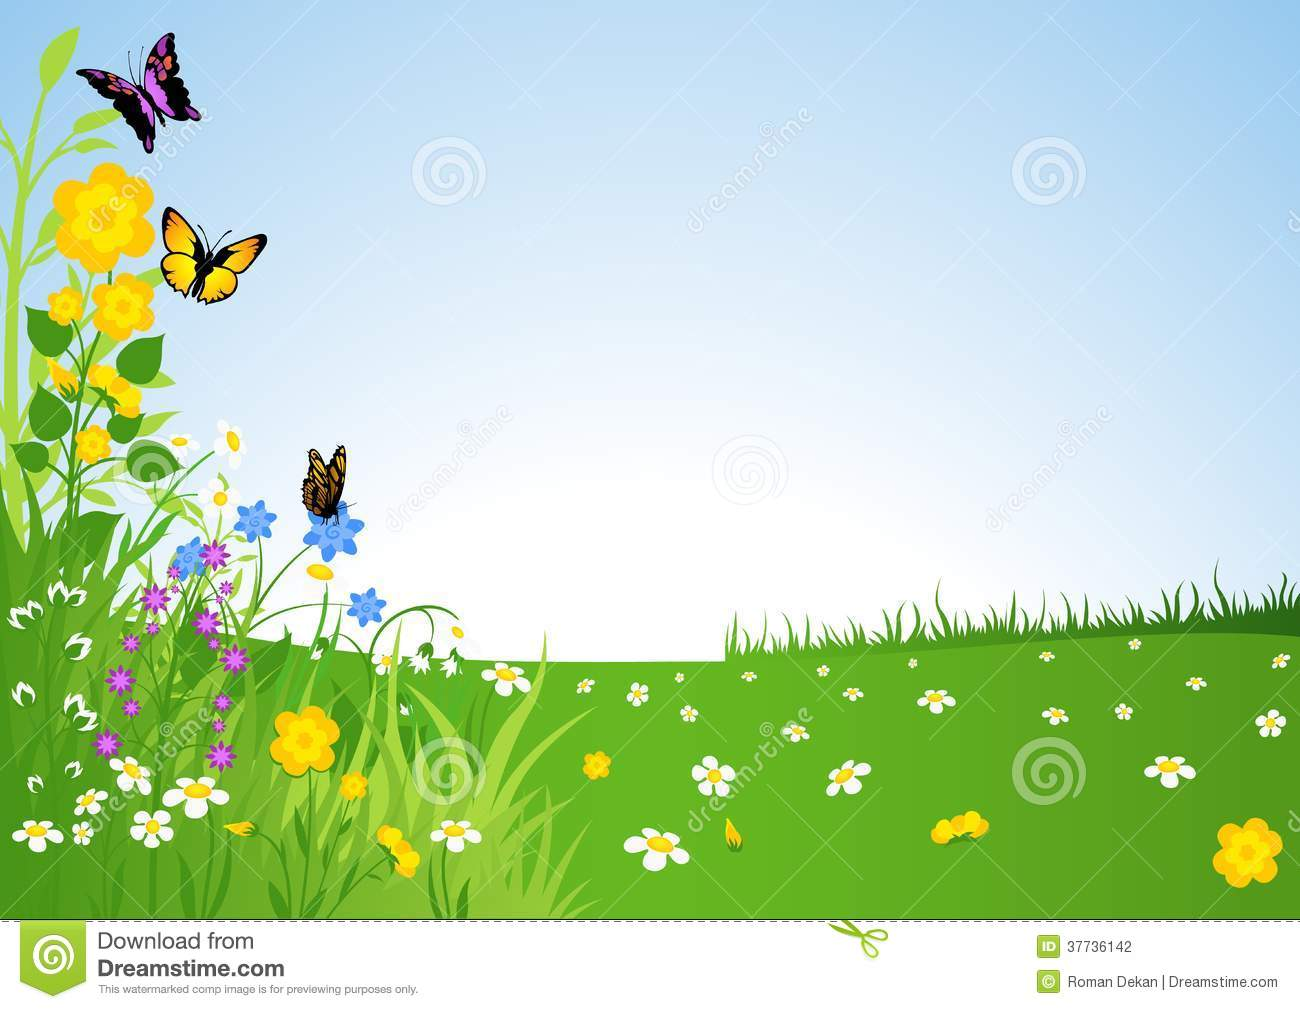 Spring Meadow - Cartoon Background Illustration, Vector.